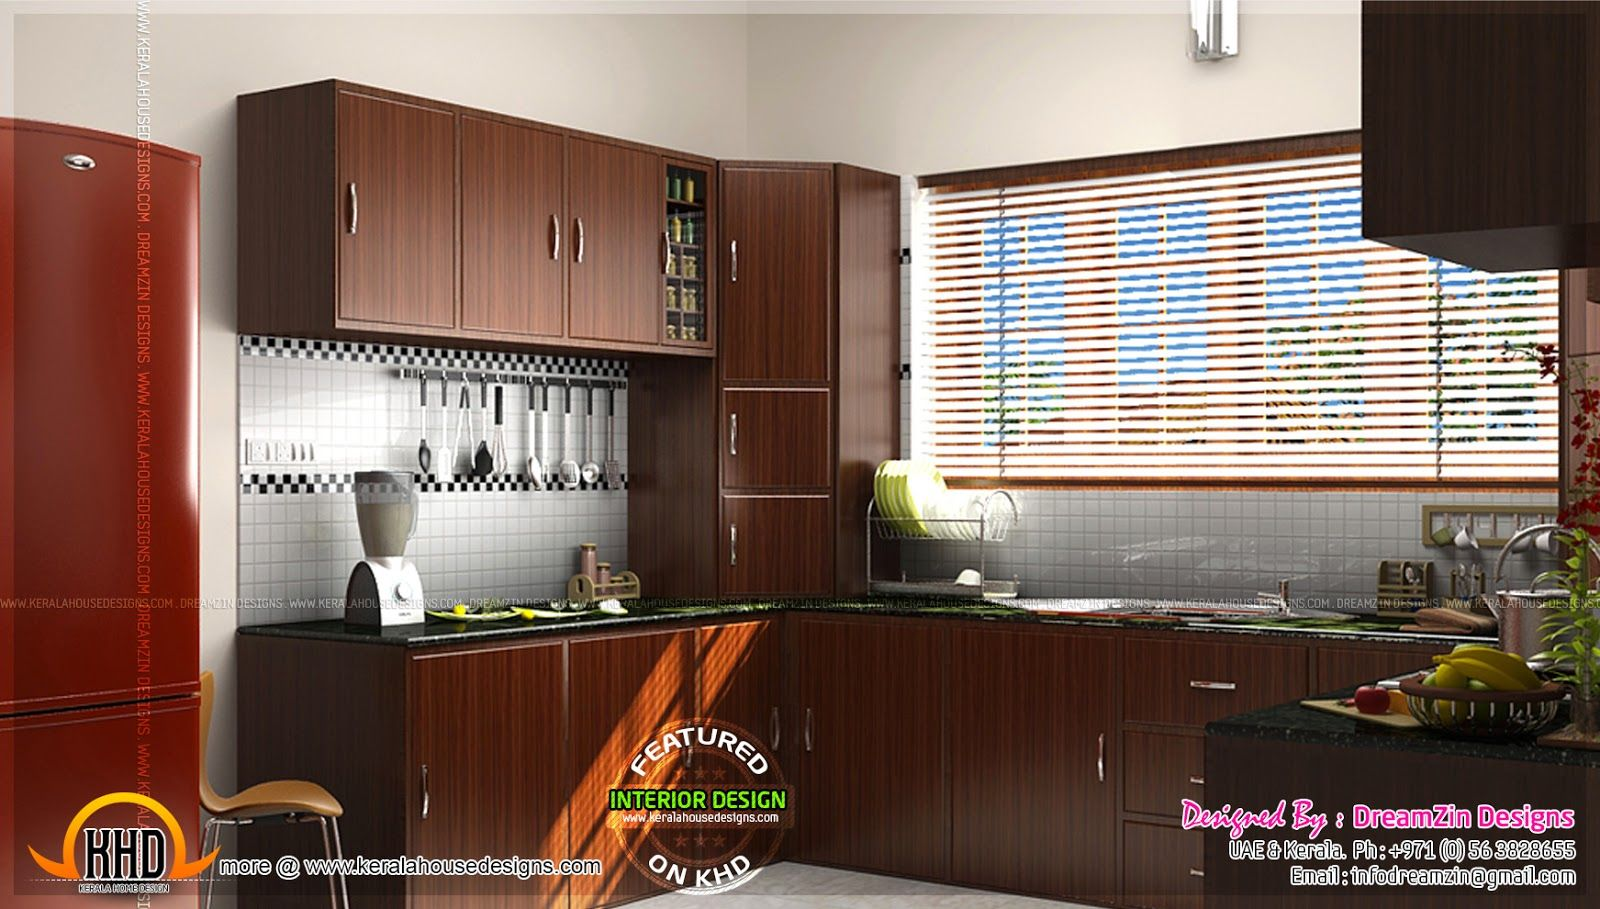 Kerala kitchen interior design modular kitchen kerala for Kerala interior designs